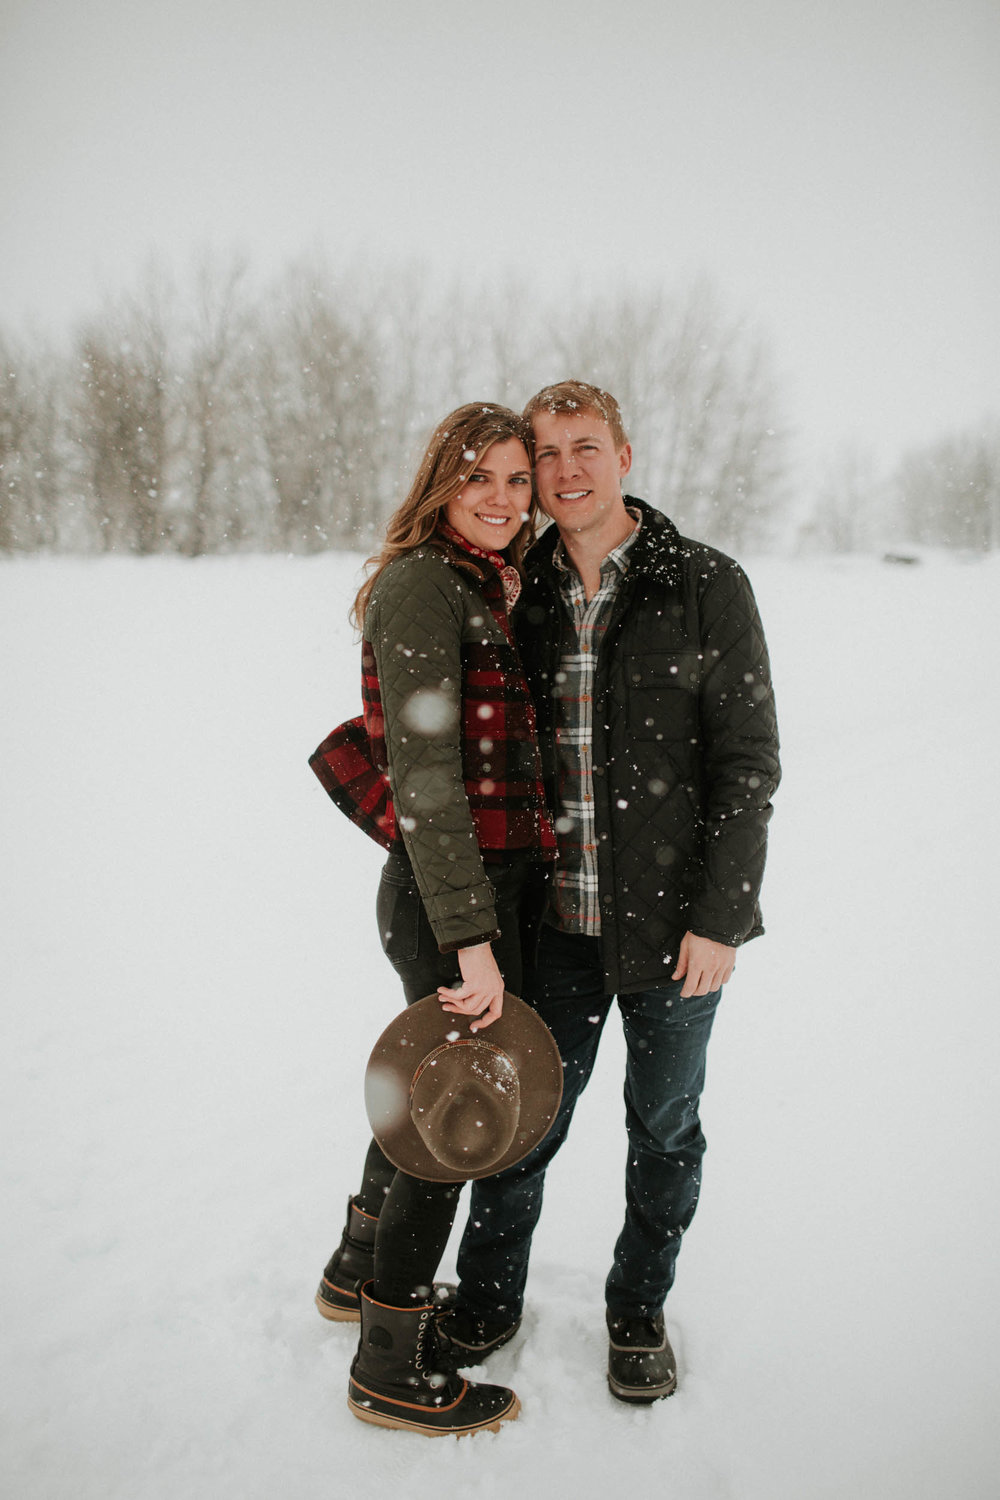 sun-valley-engagement-christinemariephoto-3.jpg